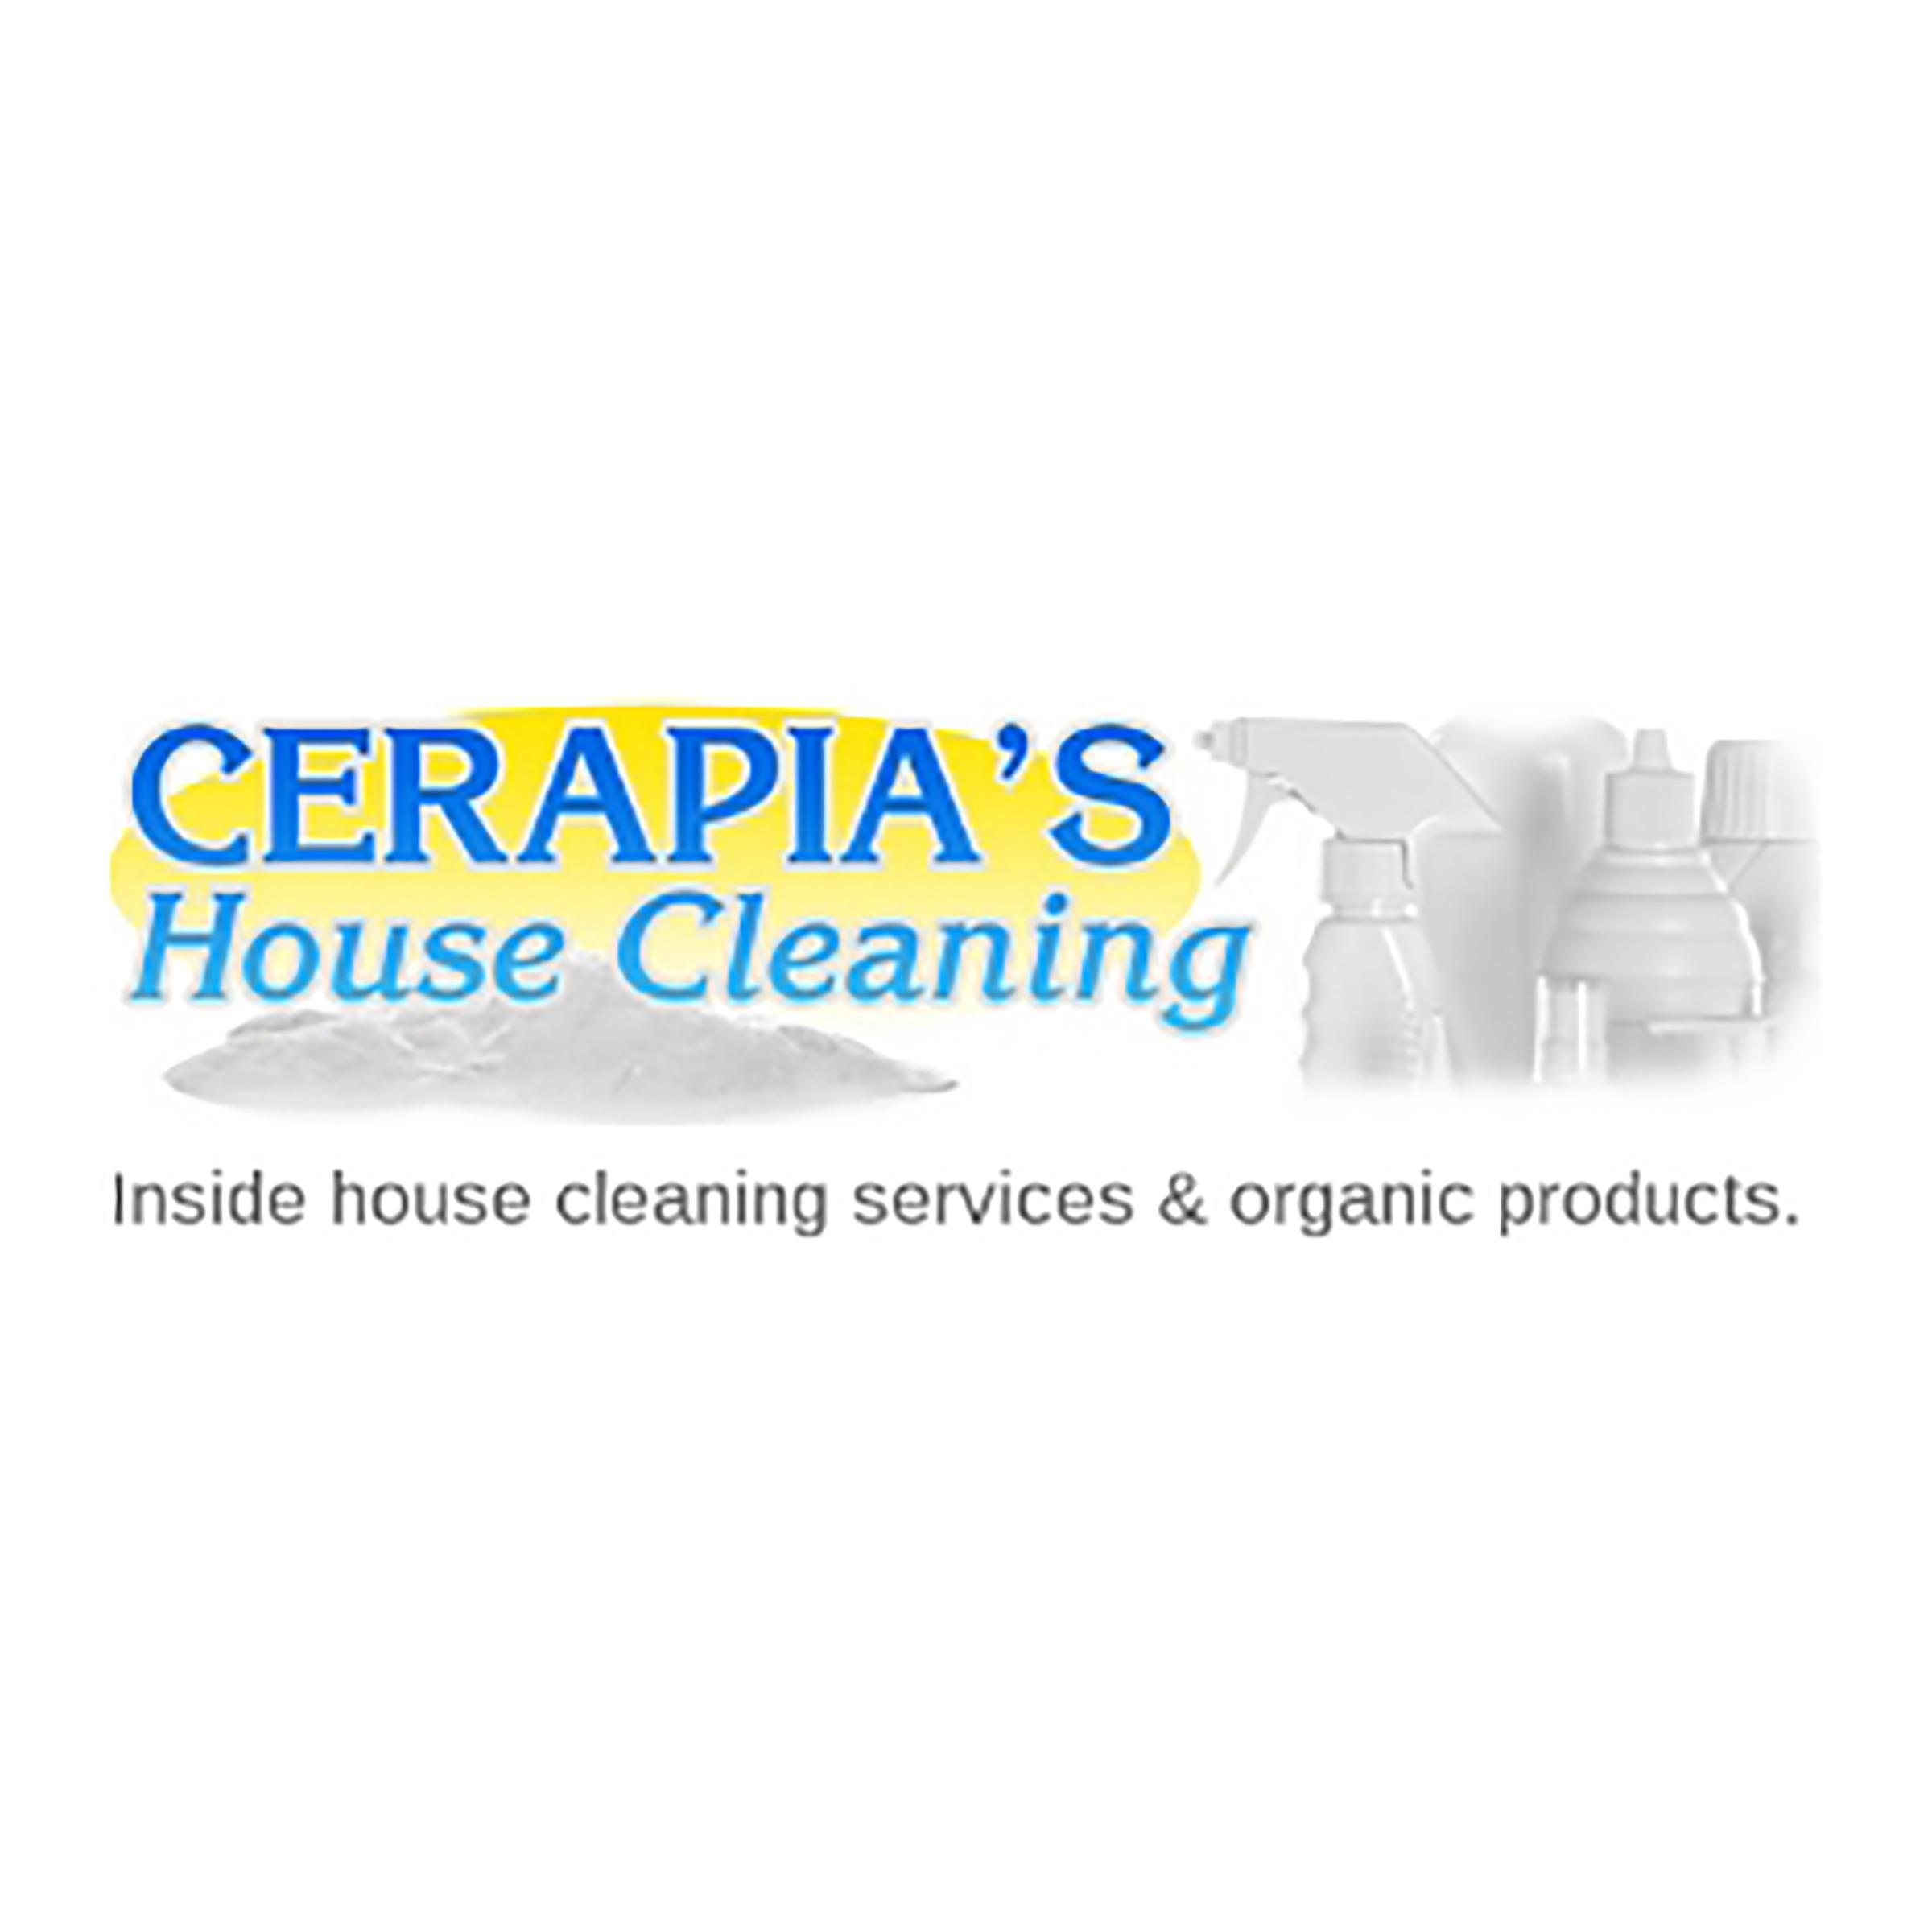 Cerapia's House Cleaning